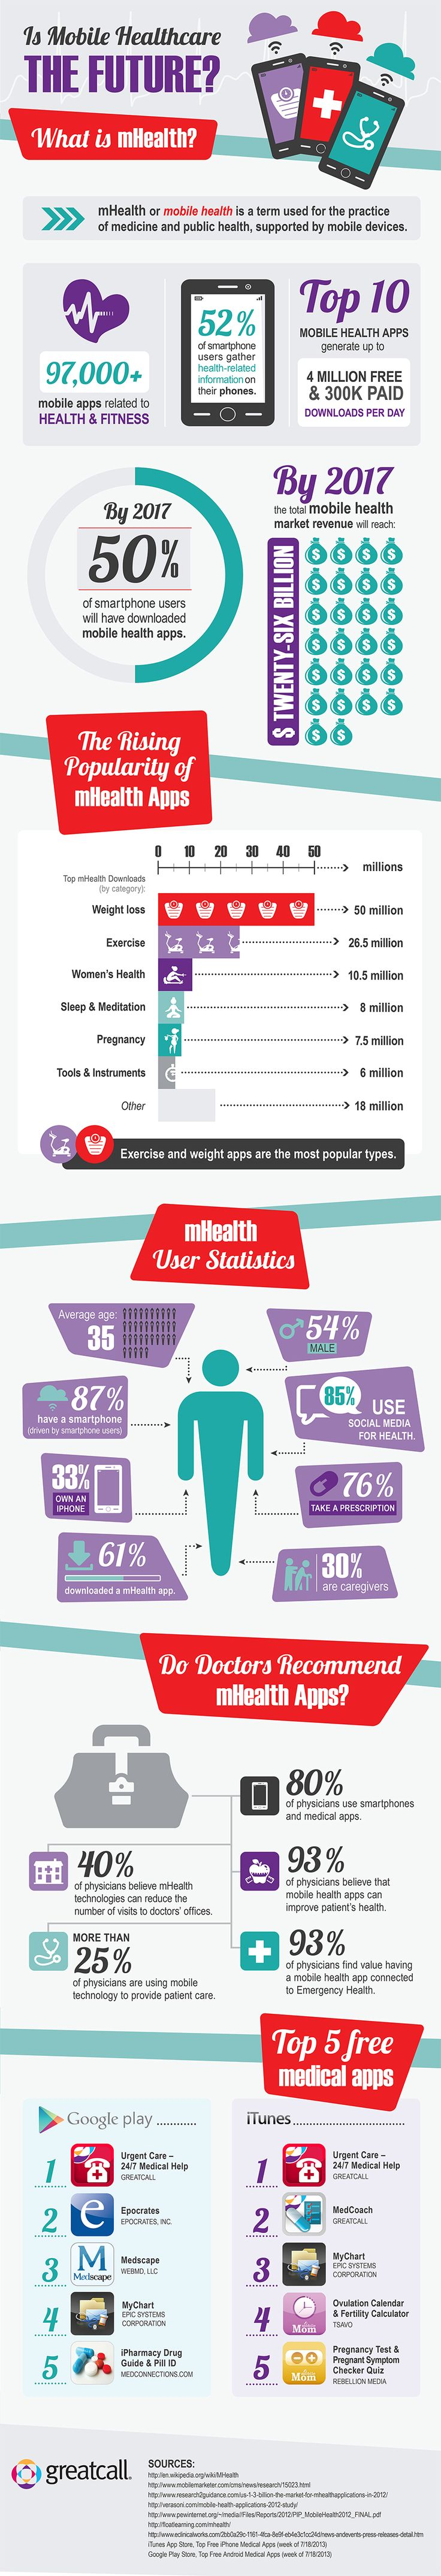 The mHealth Revolution (infographic)